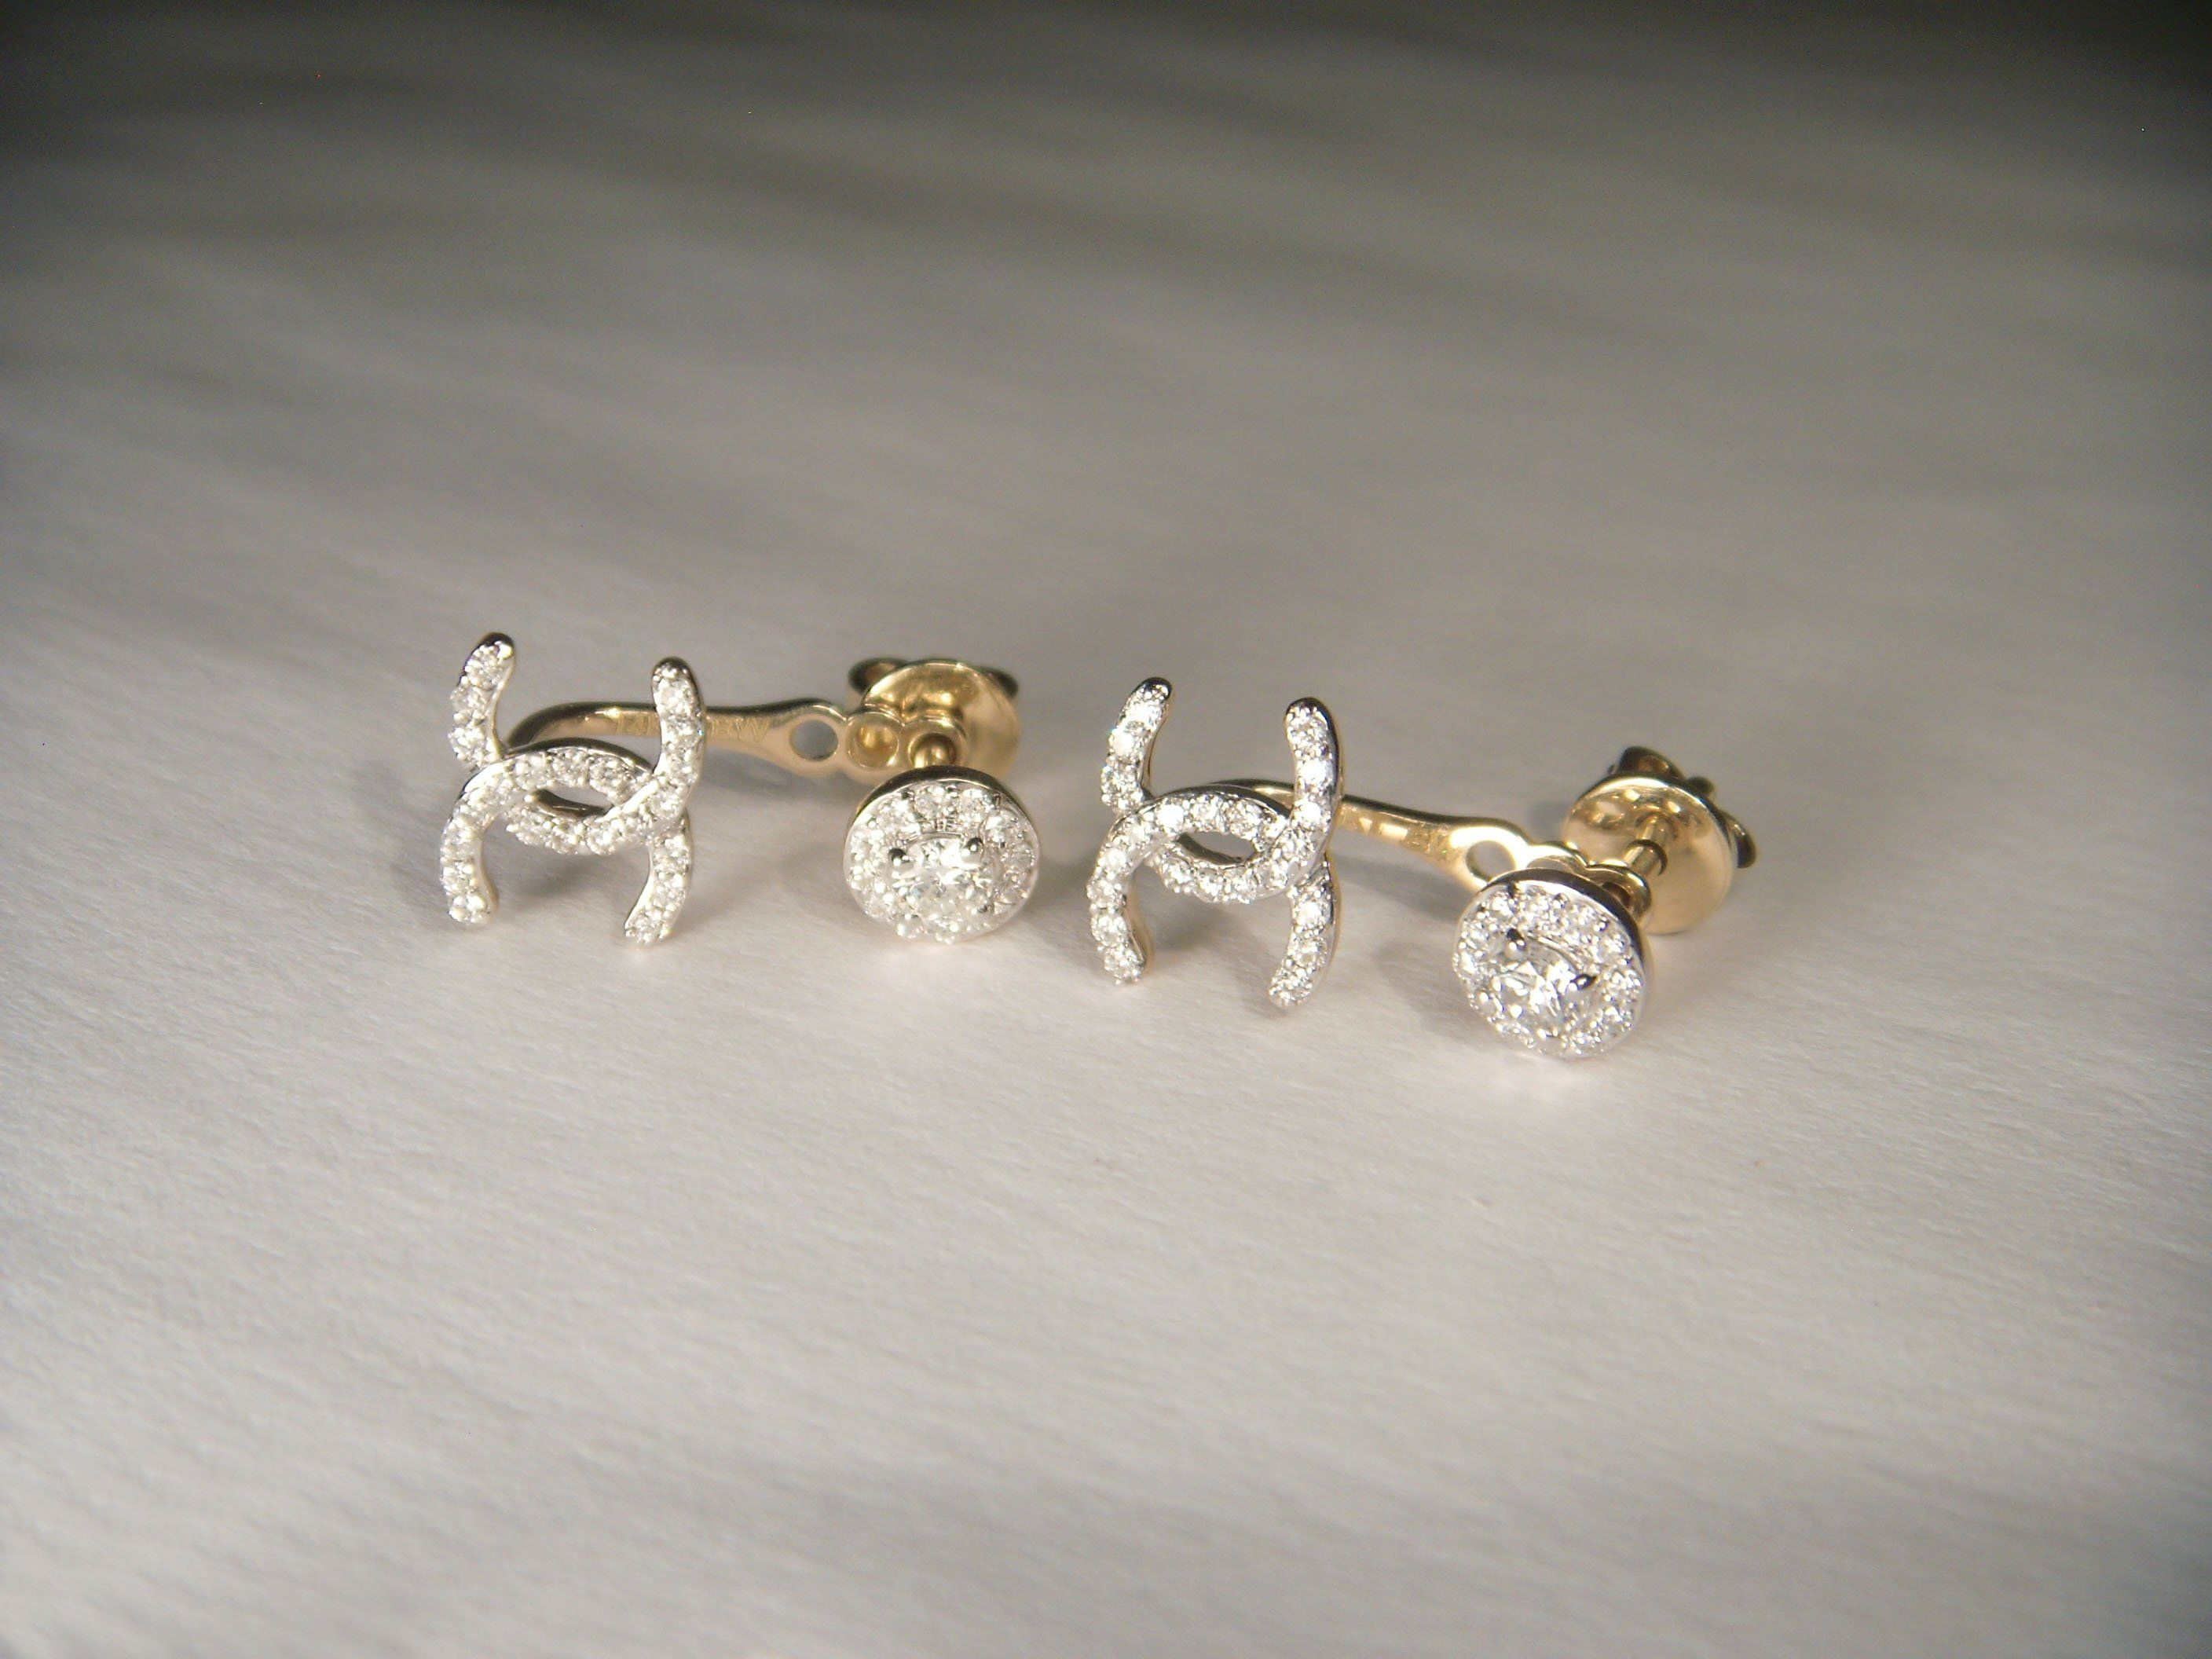 Lovely 14k Yellow Gold Diamond Chanel Sign Stud Drop Earrings